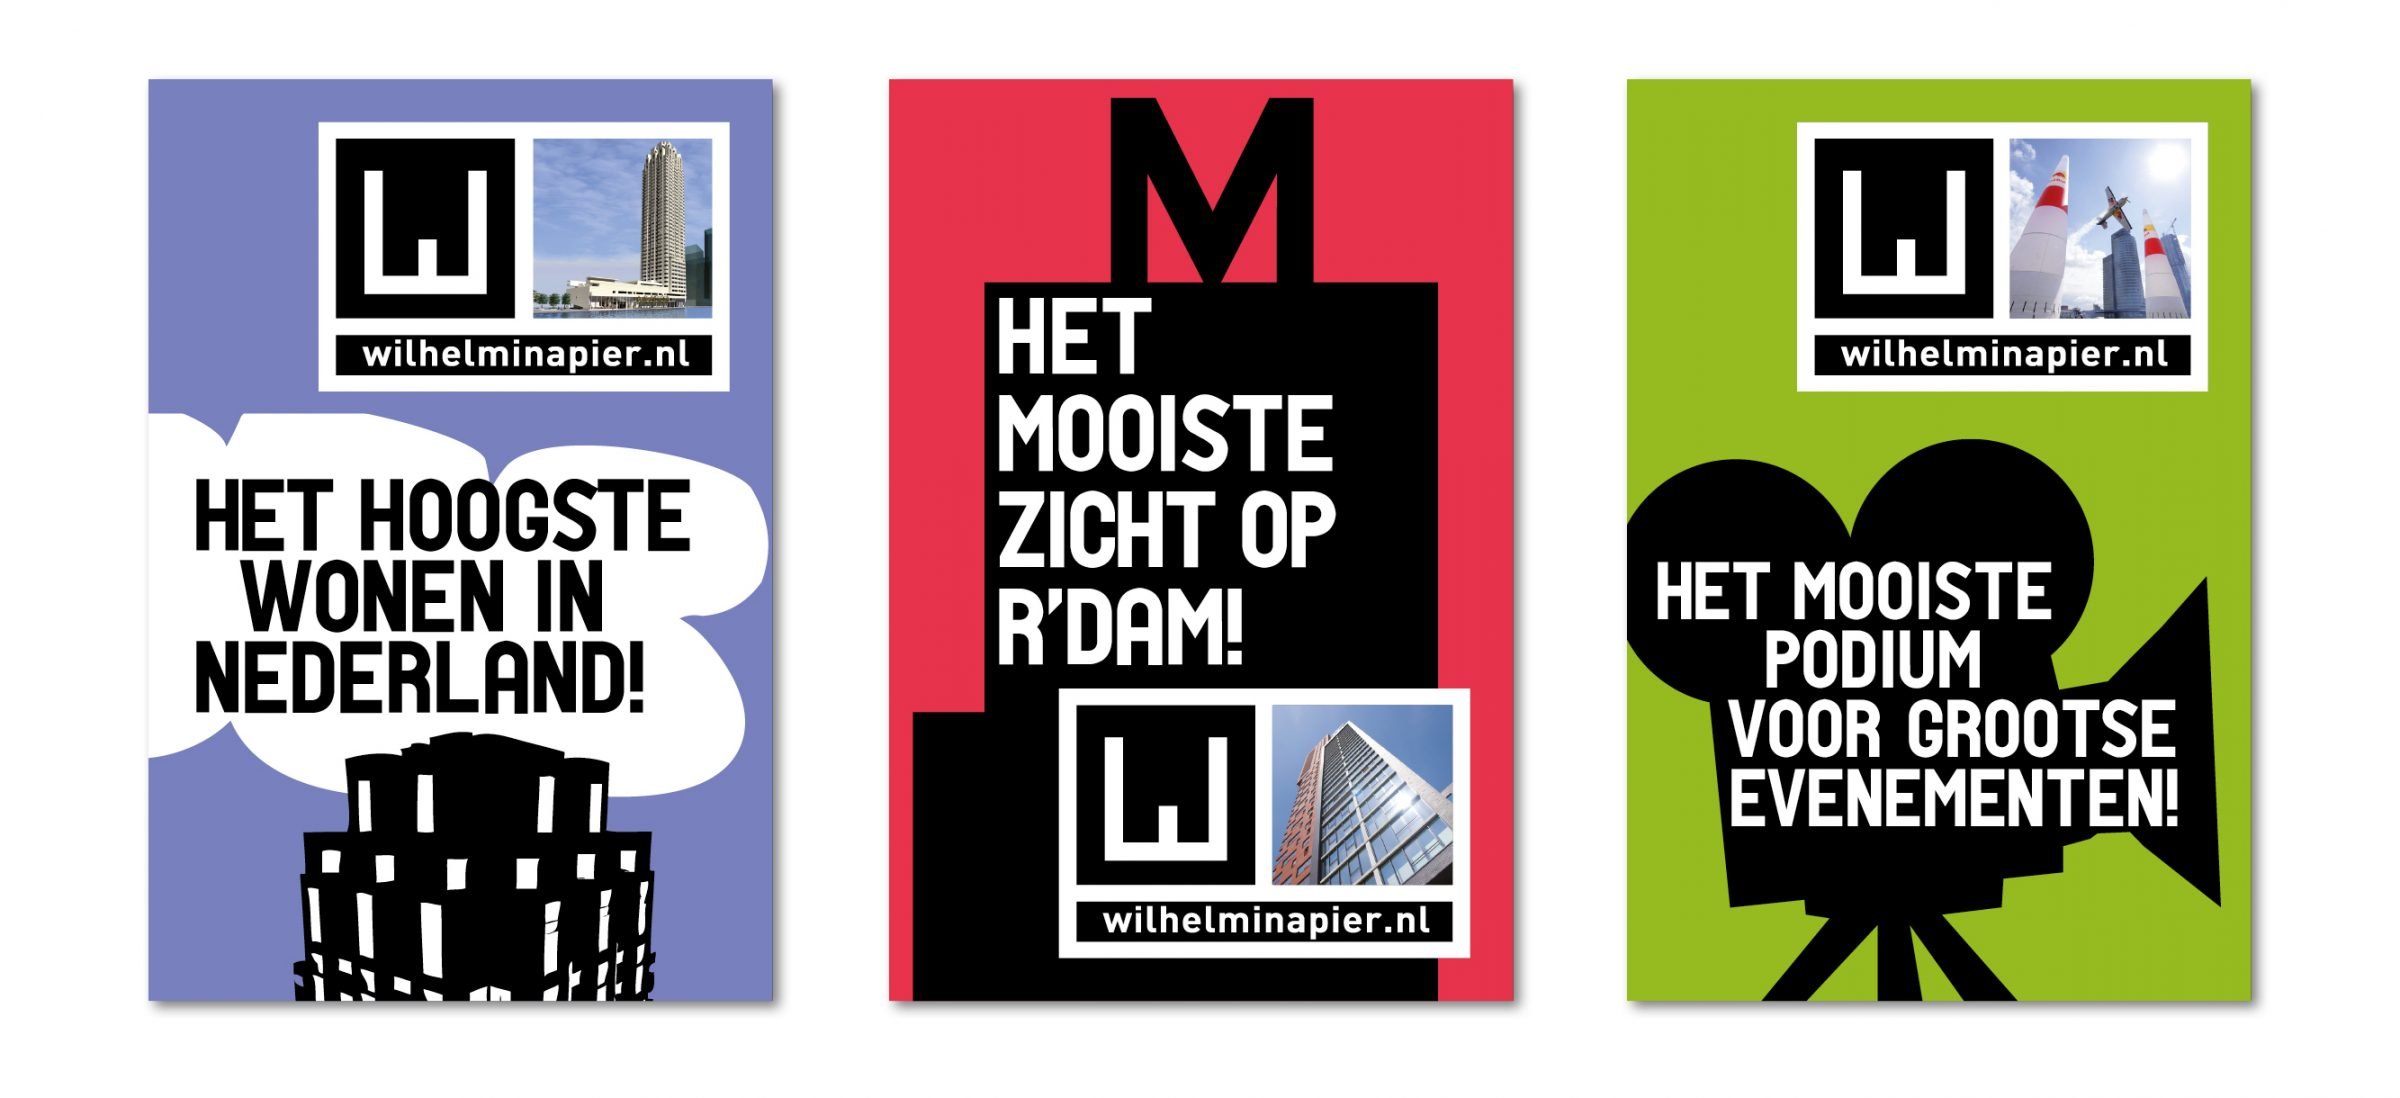 Marketing - Wilhelminapier Rotterdam